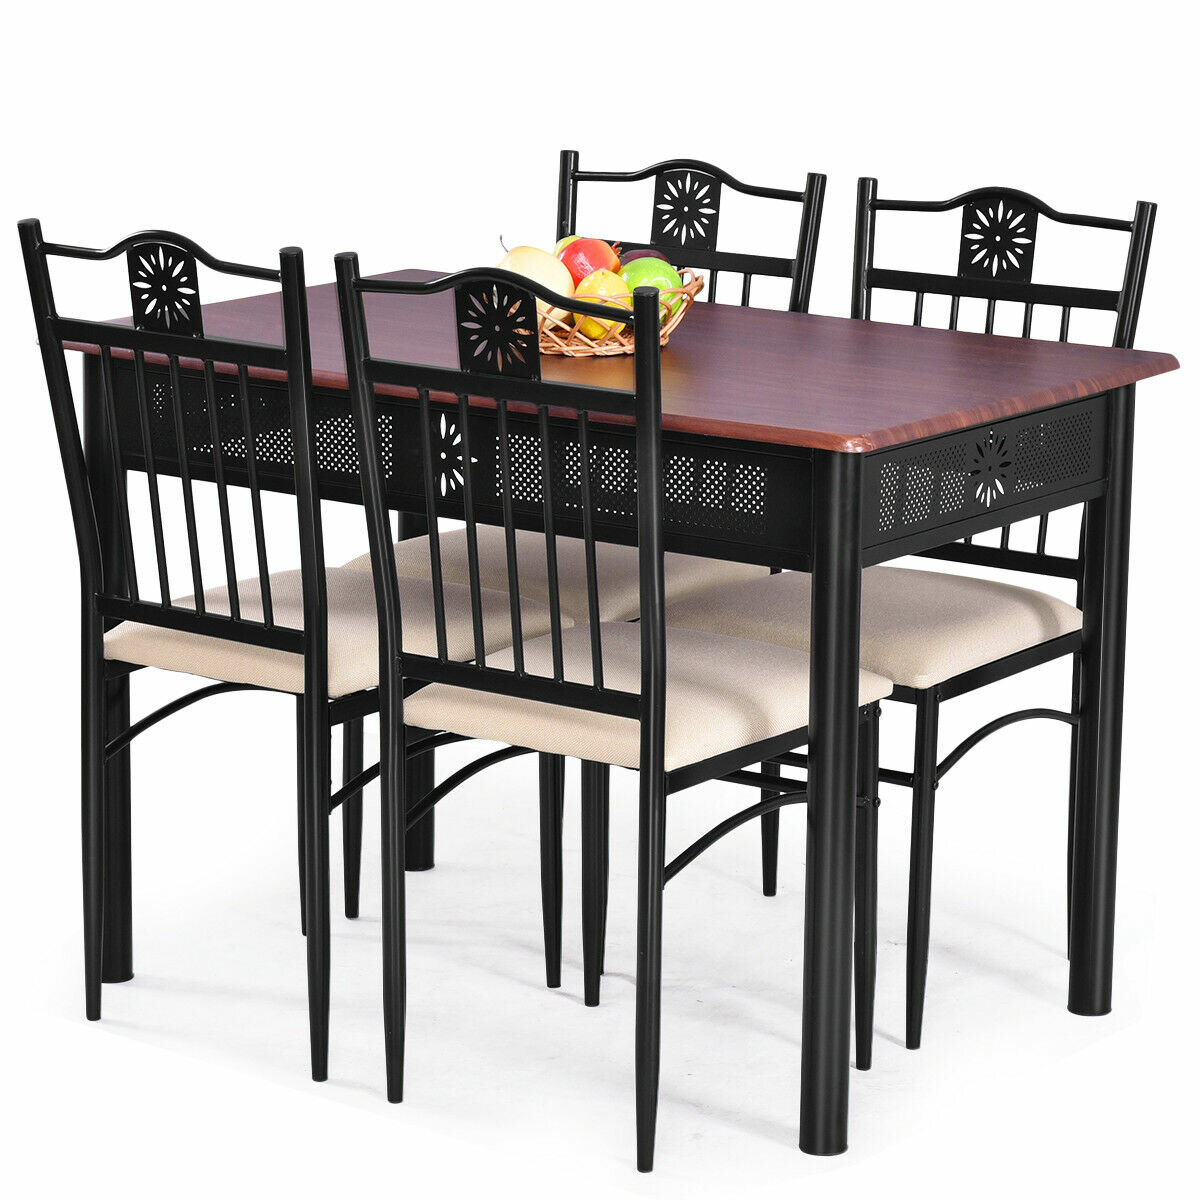 Ganya 5 Piece Dining Set Within 2017 Miskell 3 Piece Dining Sets (Image 12 of 20)